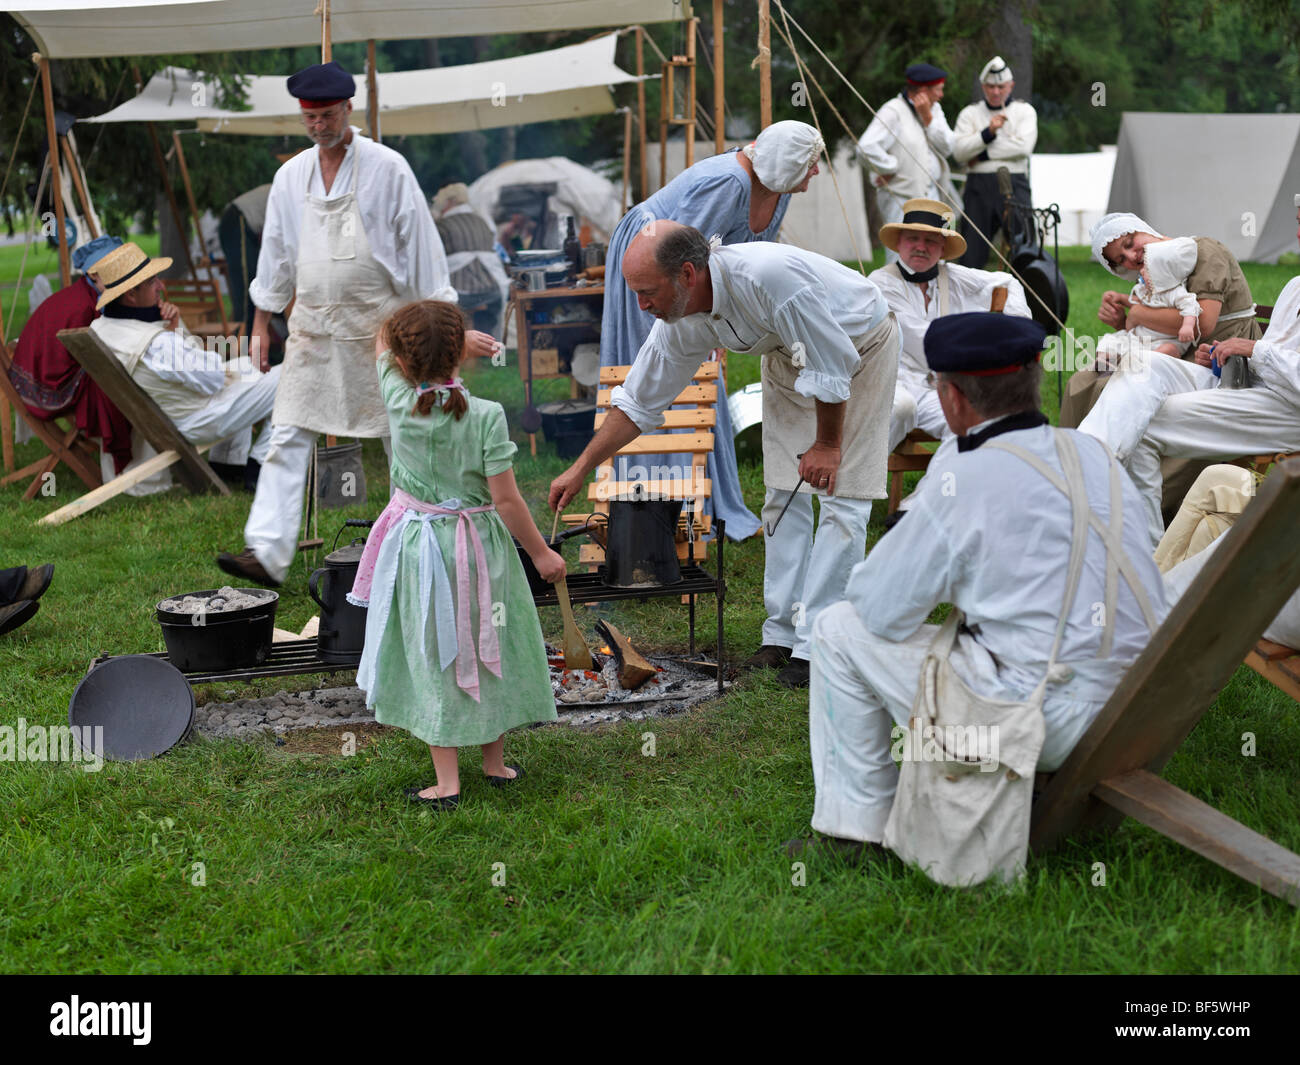 Canada, Ontario, Fort Erie, Old Fort Erie, War of 1812 reenactors in period costume set up in camp - Stock Image